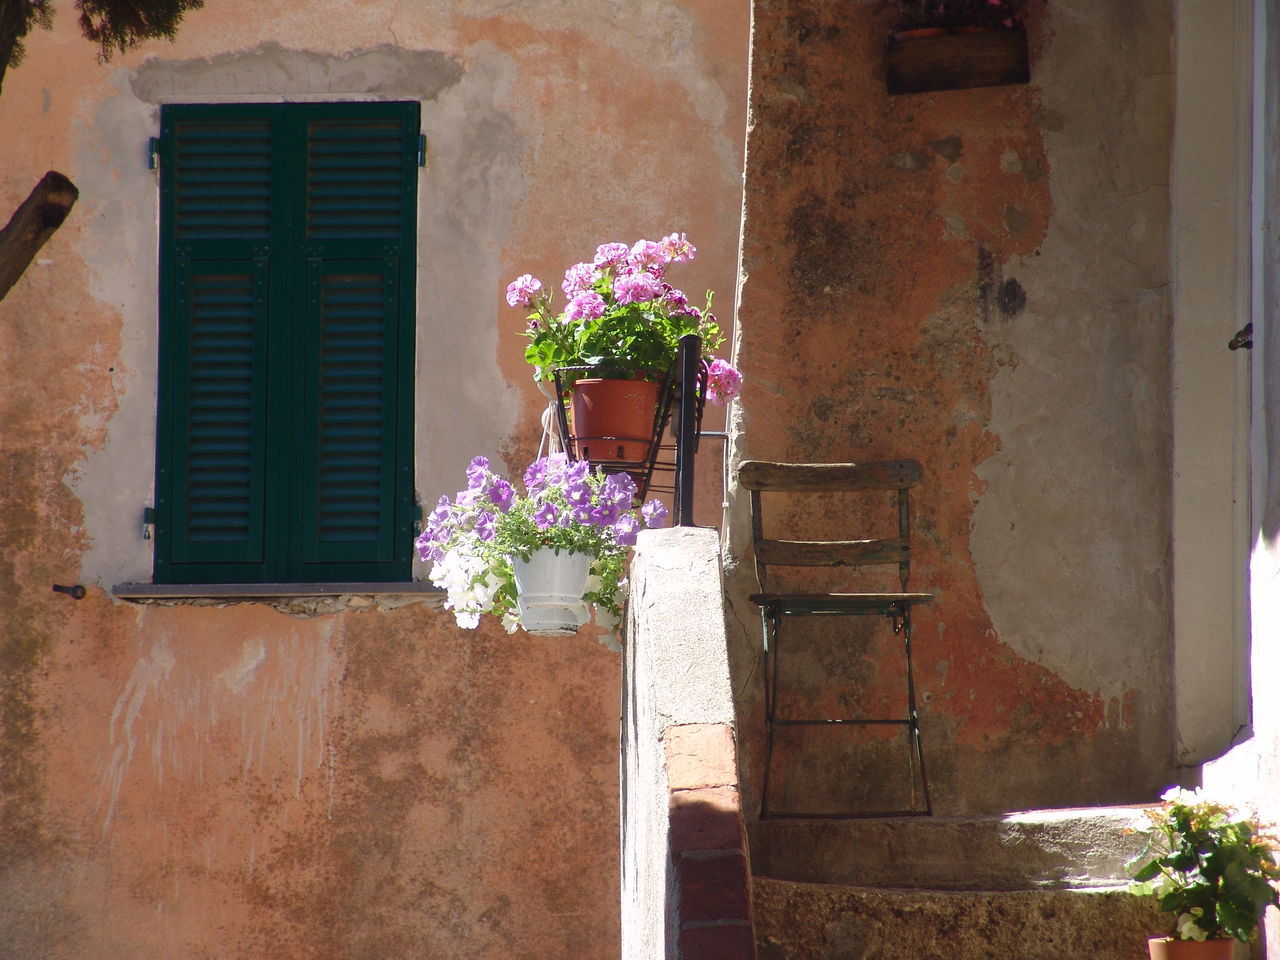 flower, architecture, building exterior, built structure, window, pink color, no people, potted plant, day, window box, outdoors, growth, plant, nature, beauty in nature